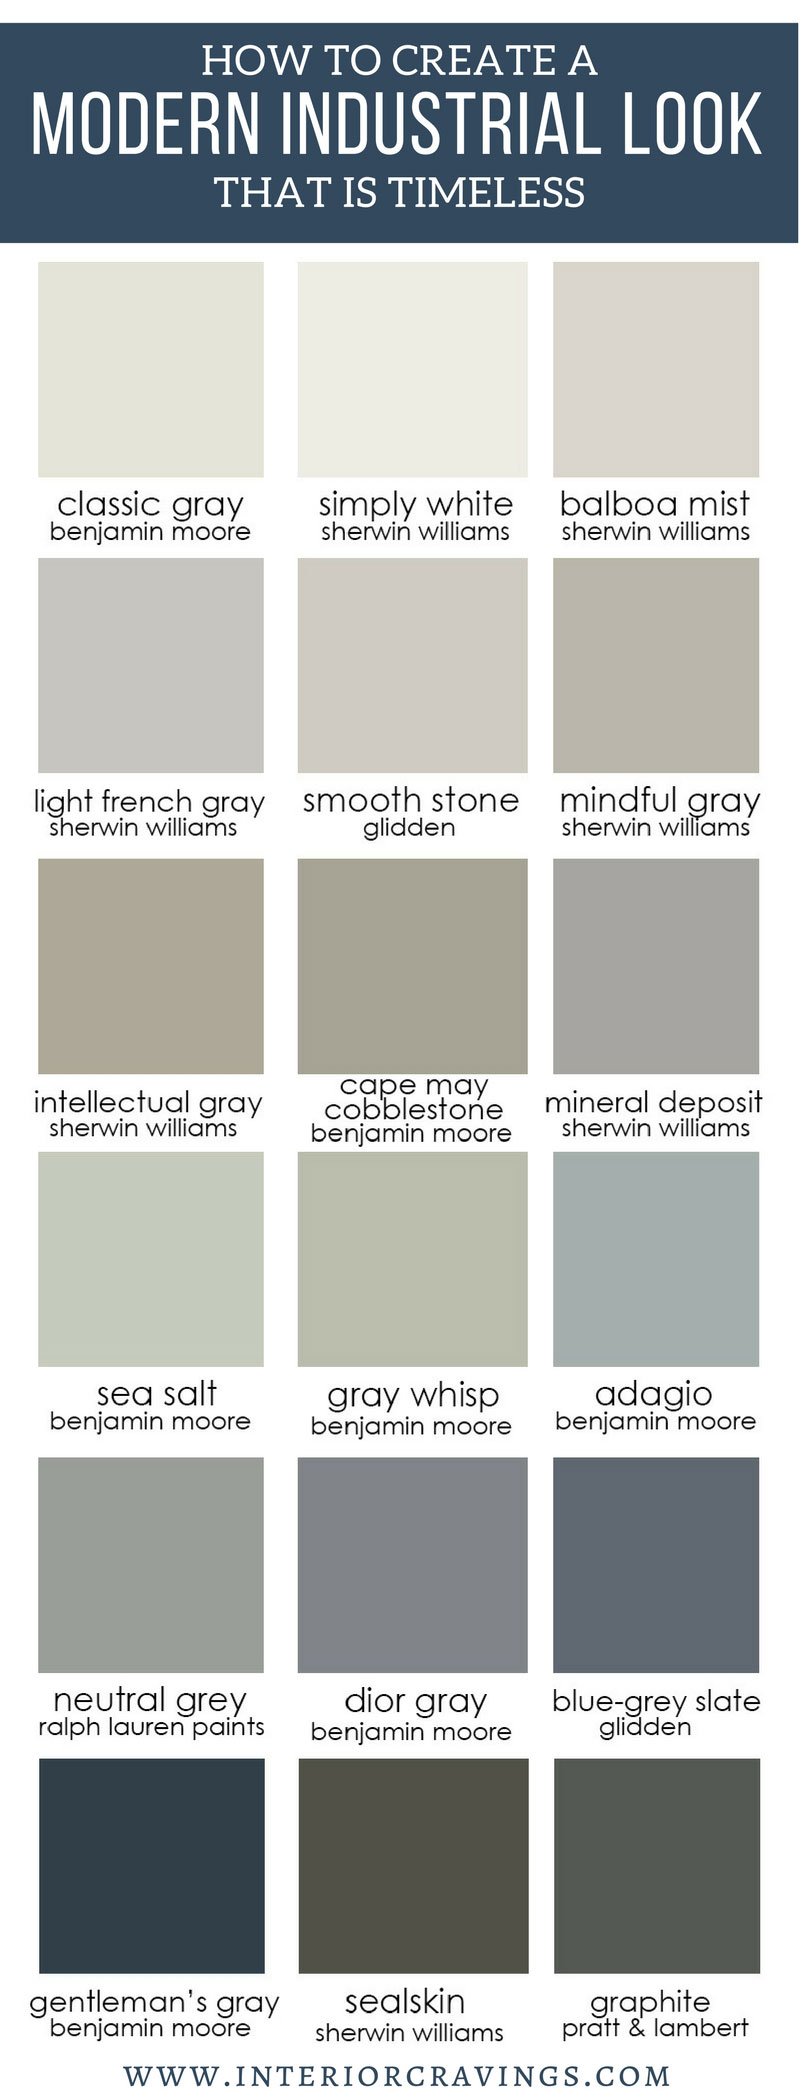 Merveilleux INTERIOR CRAVINGS MODERN INDUSTRIAL NEUTRAL PAINT COLOR PALETTE